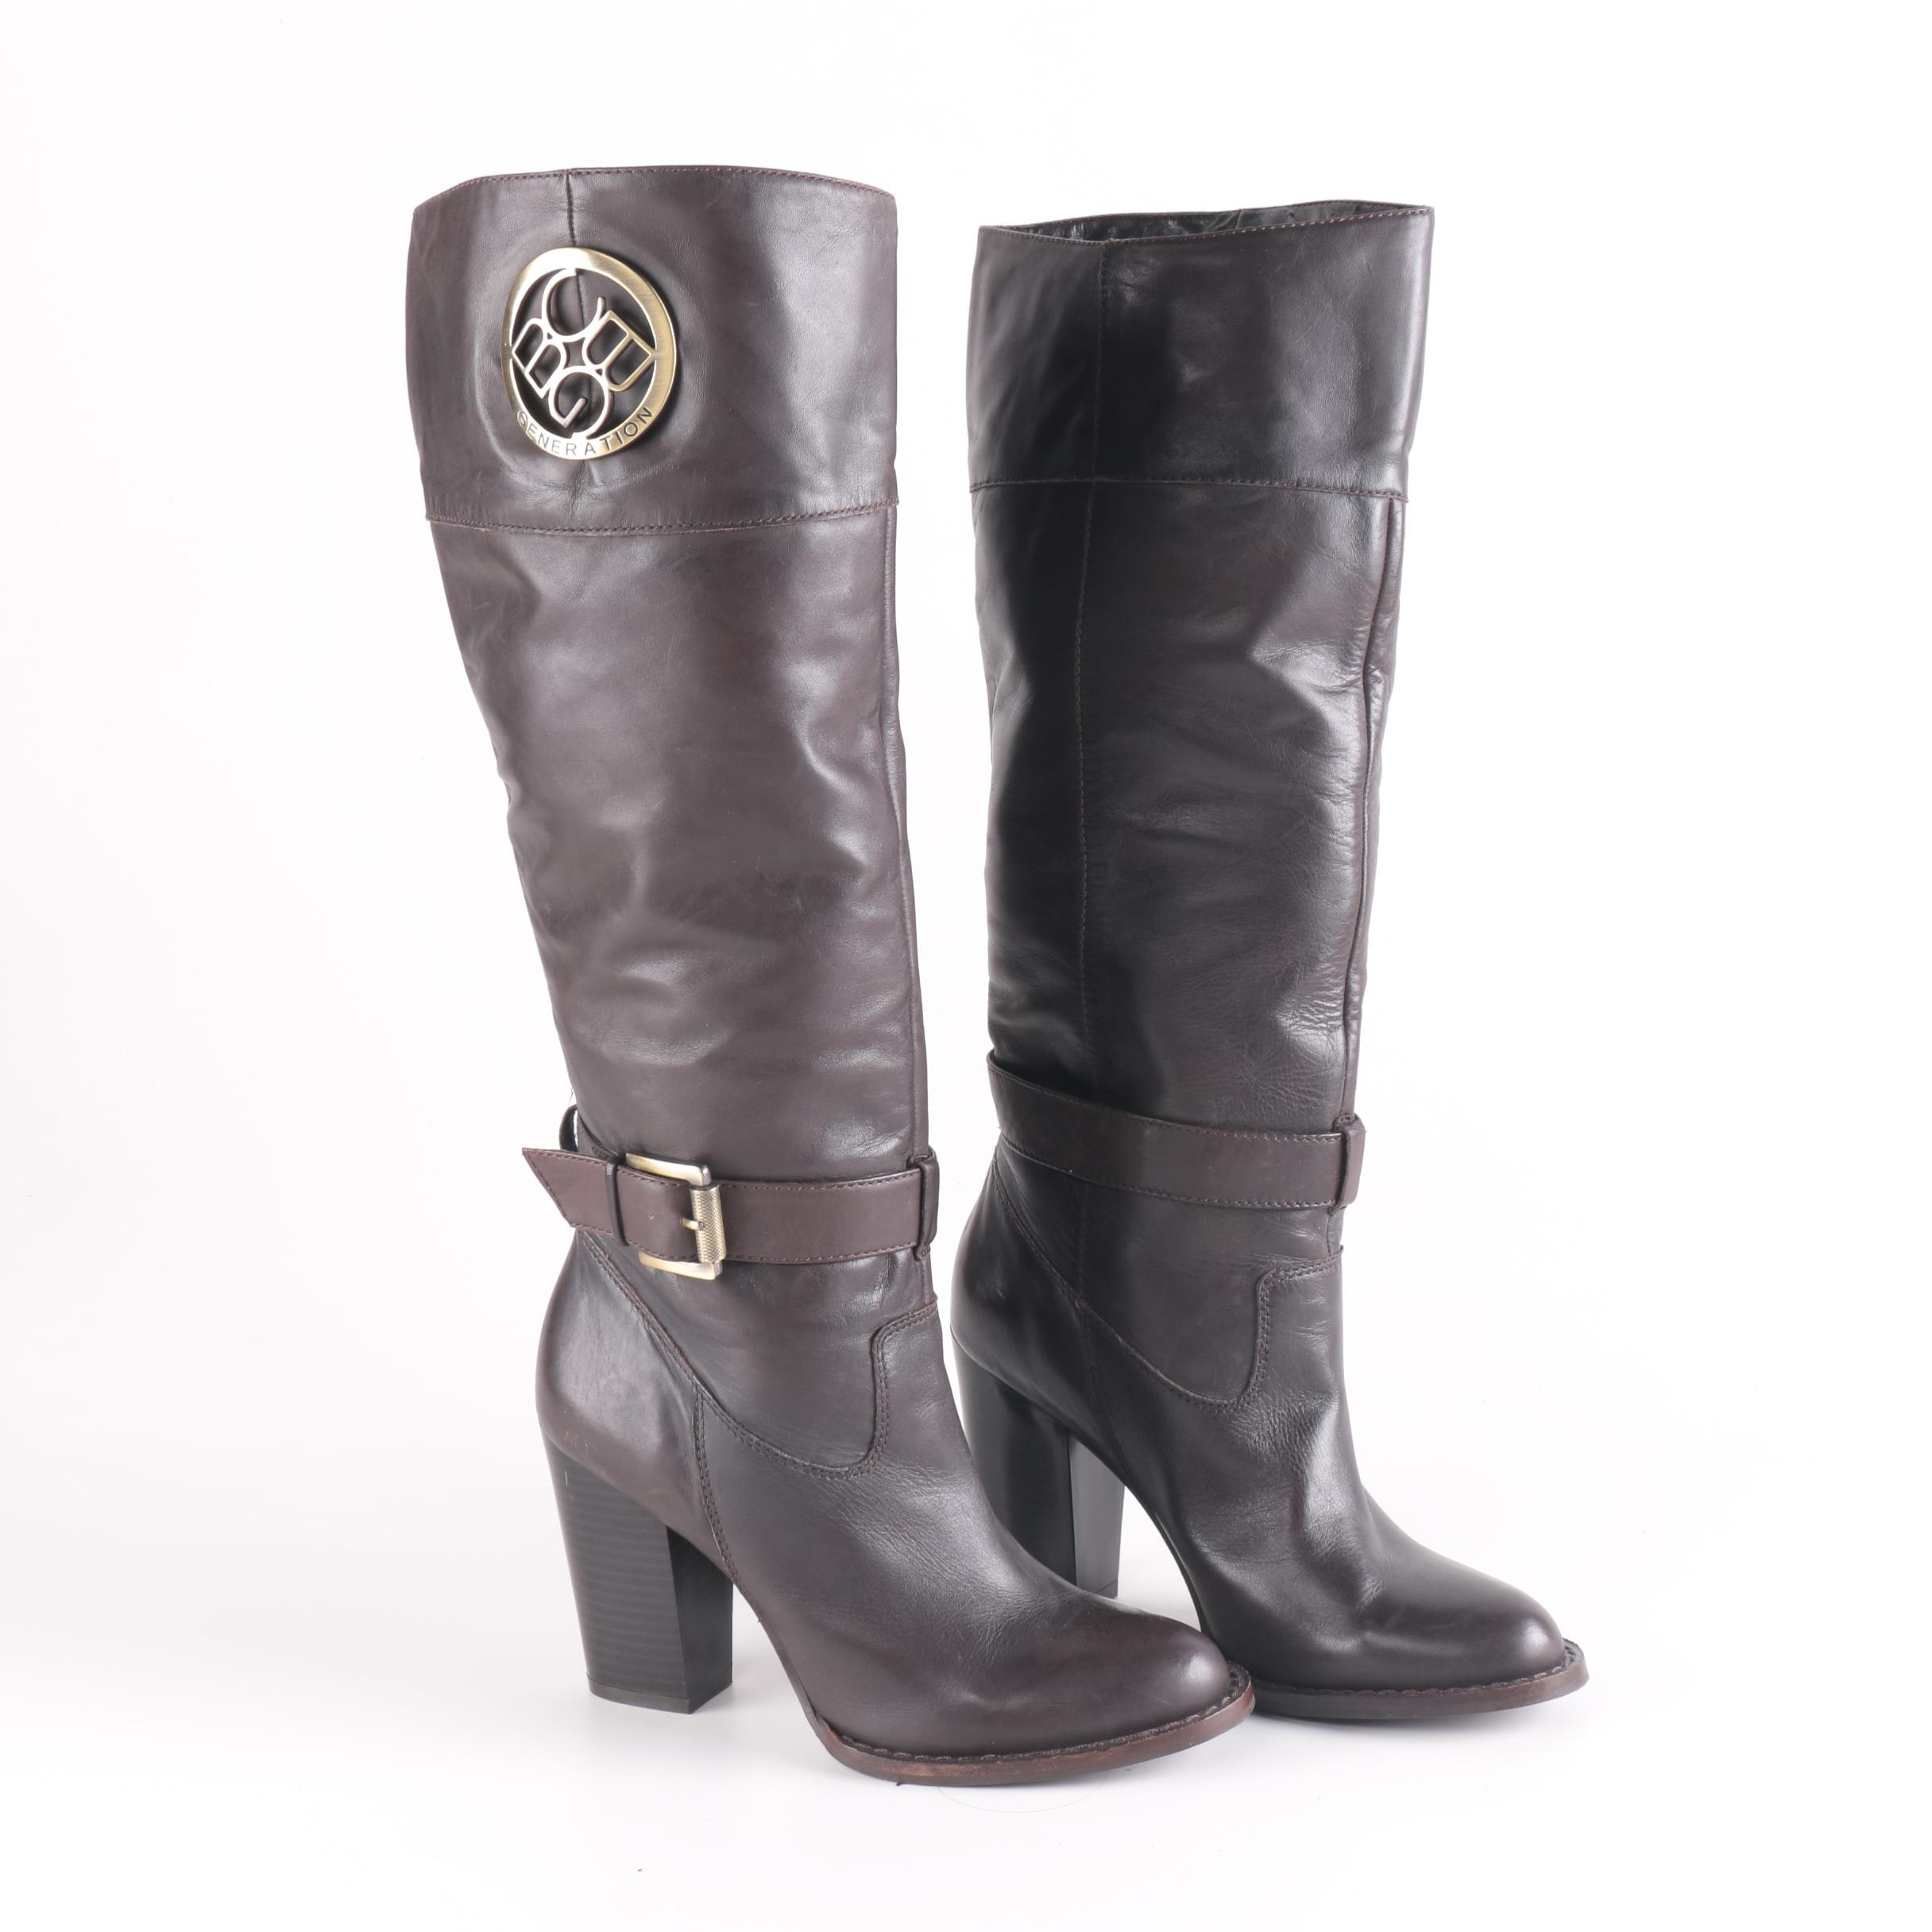 BCBG Brown Leather Boots